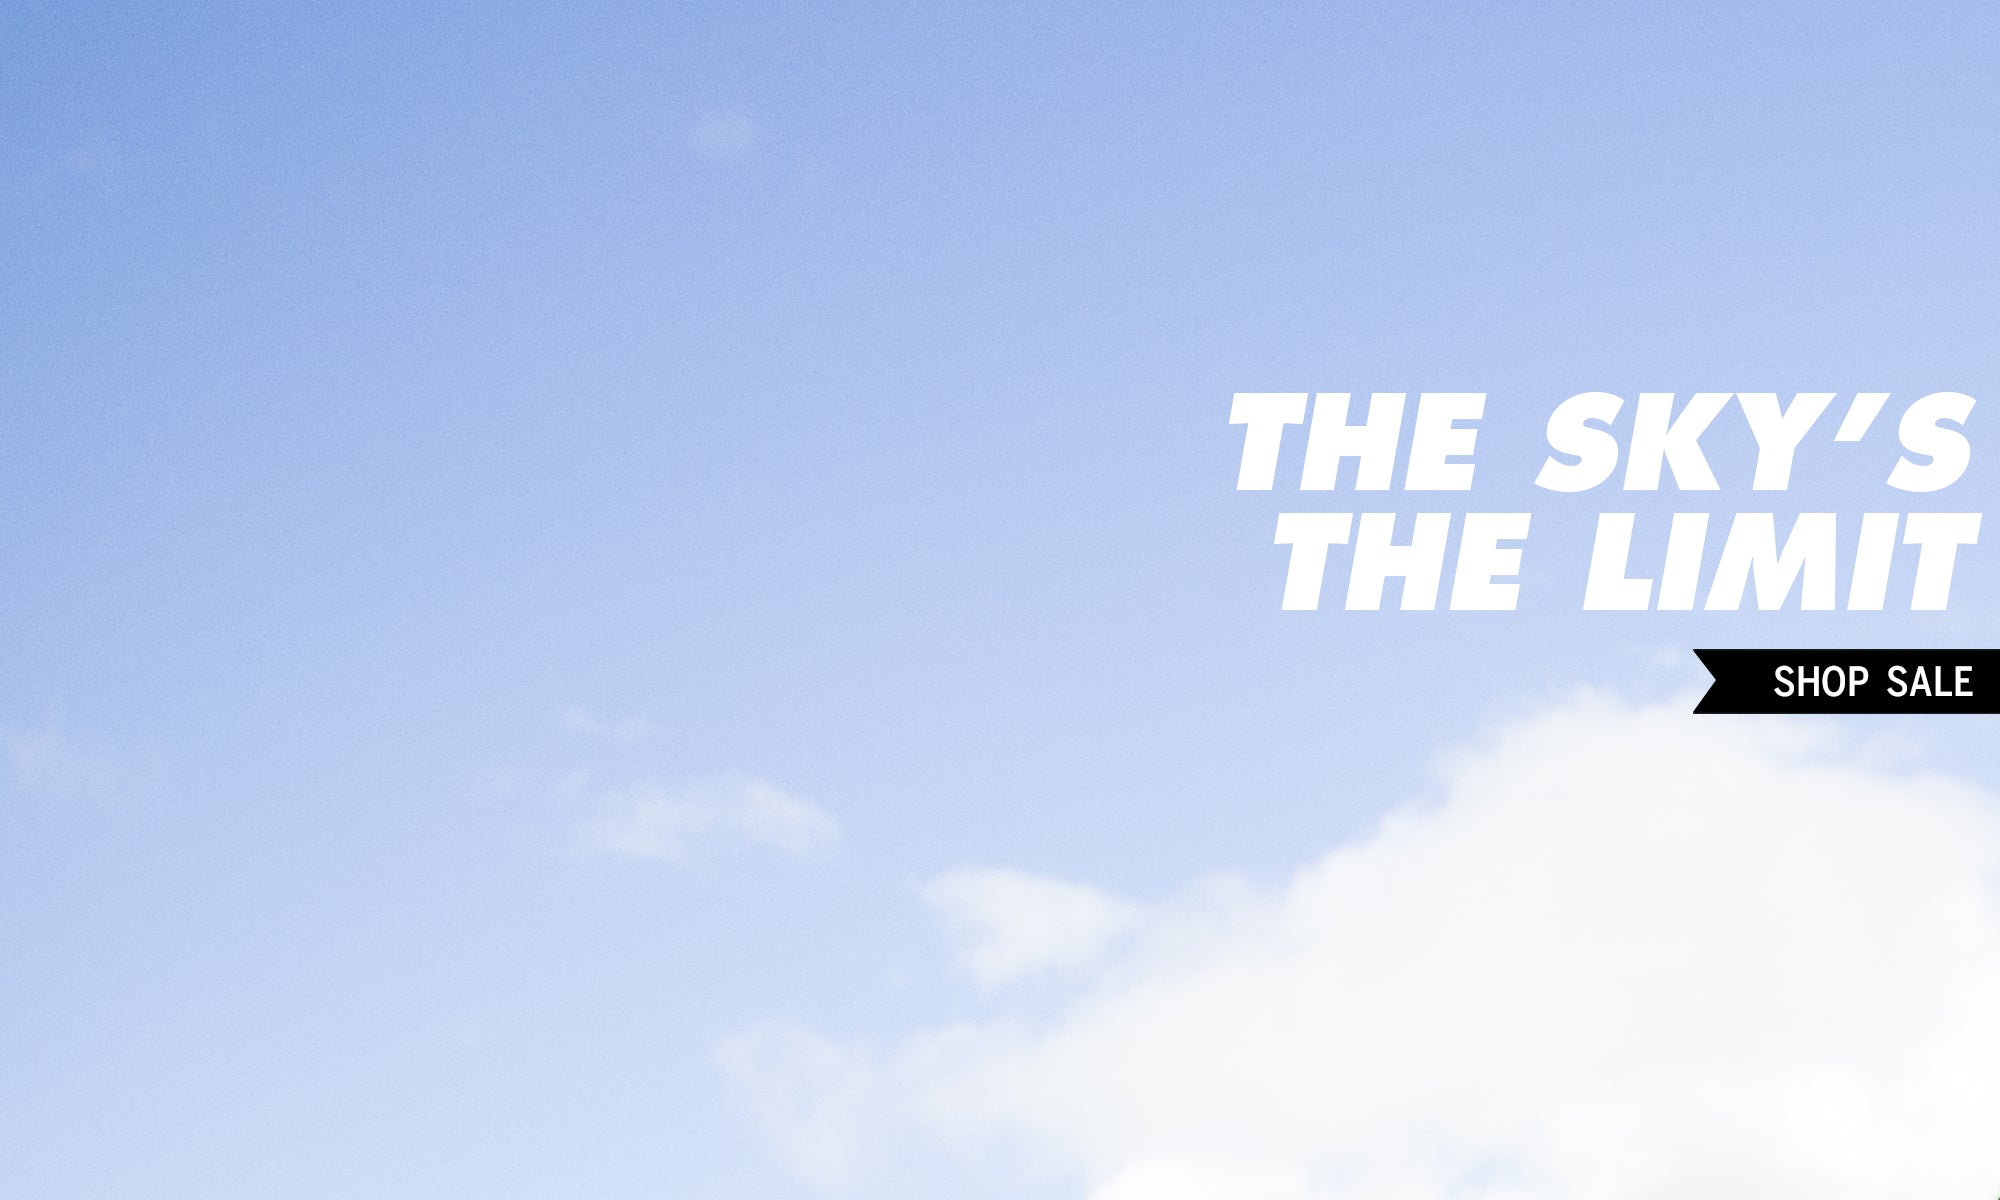 The sky's the limit | Shop the super sale